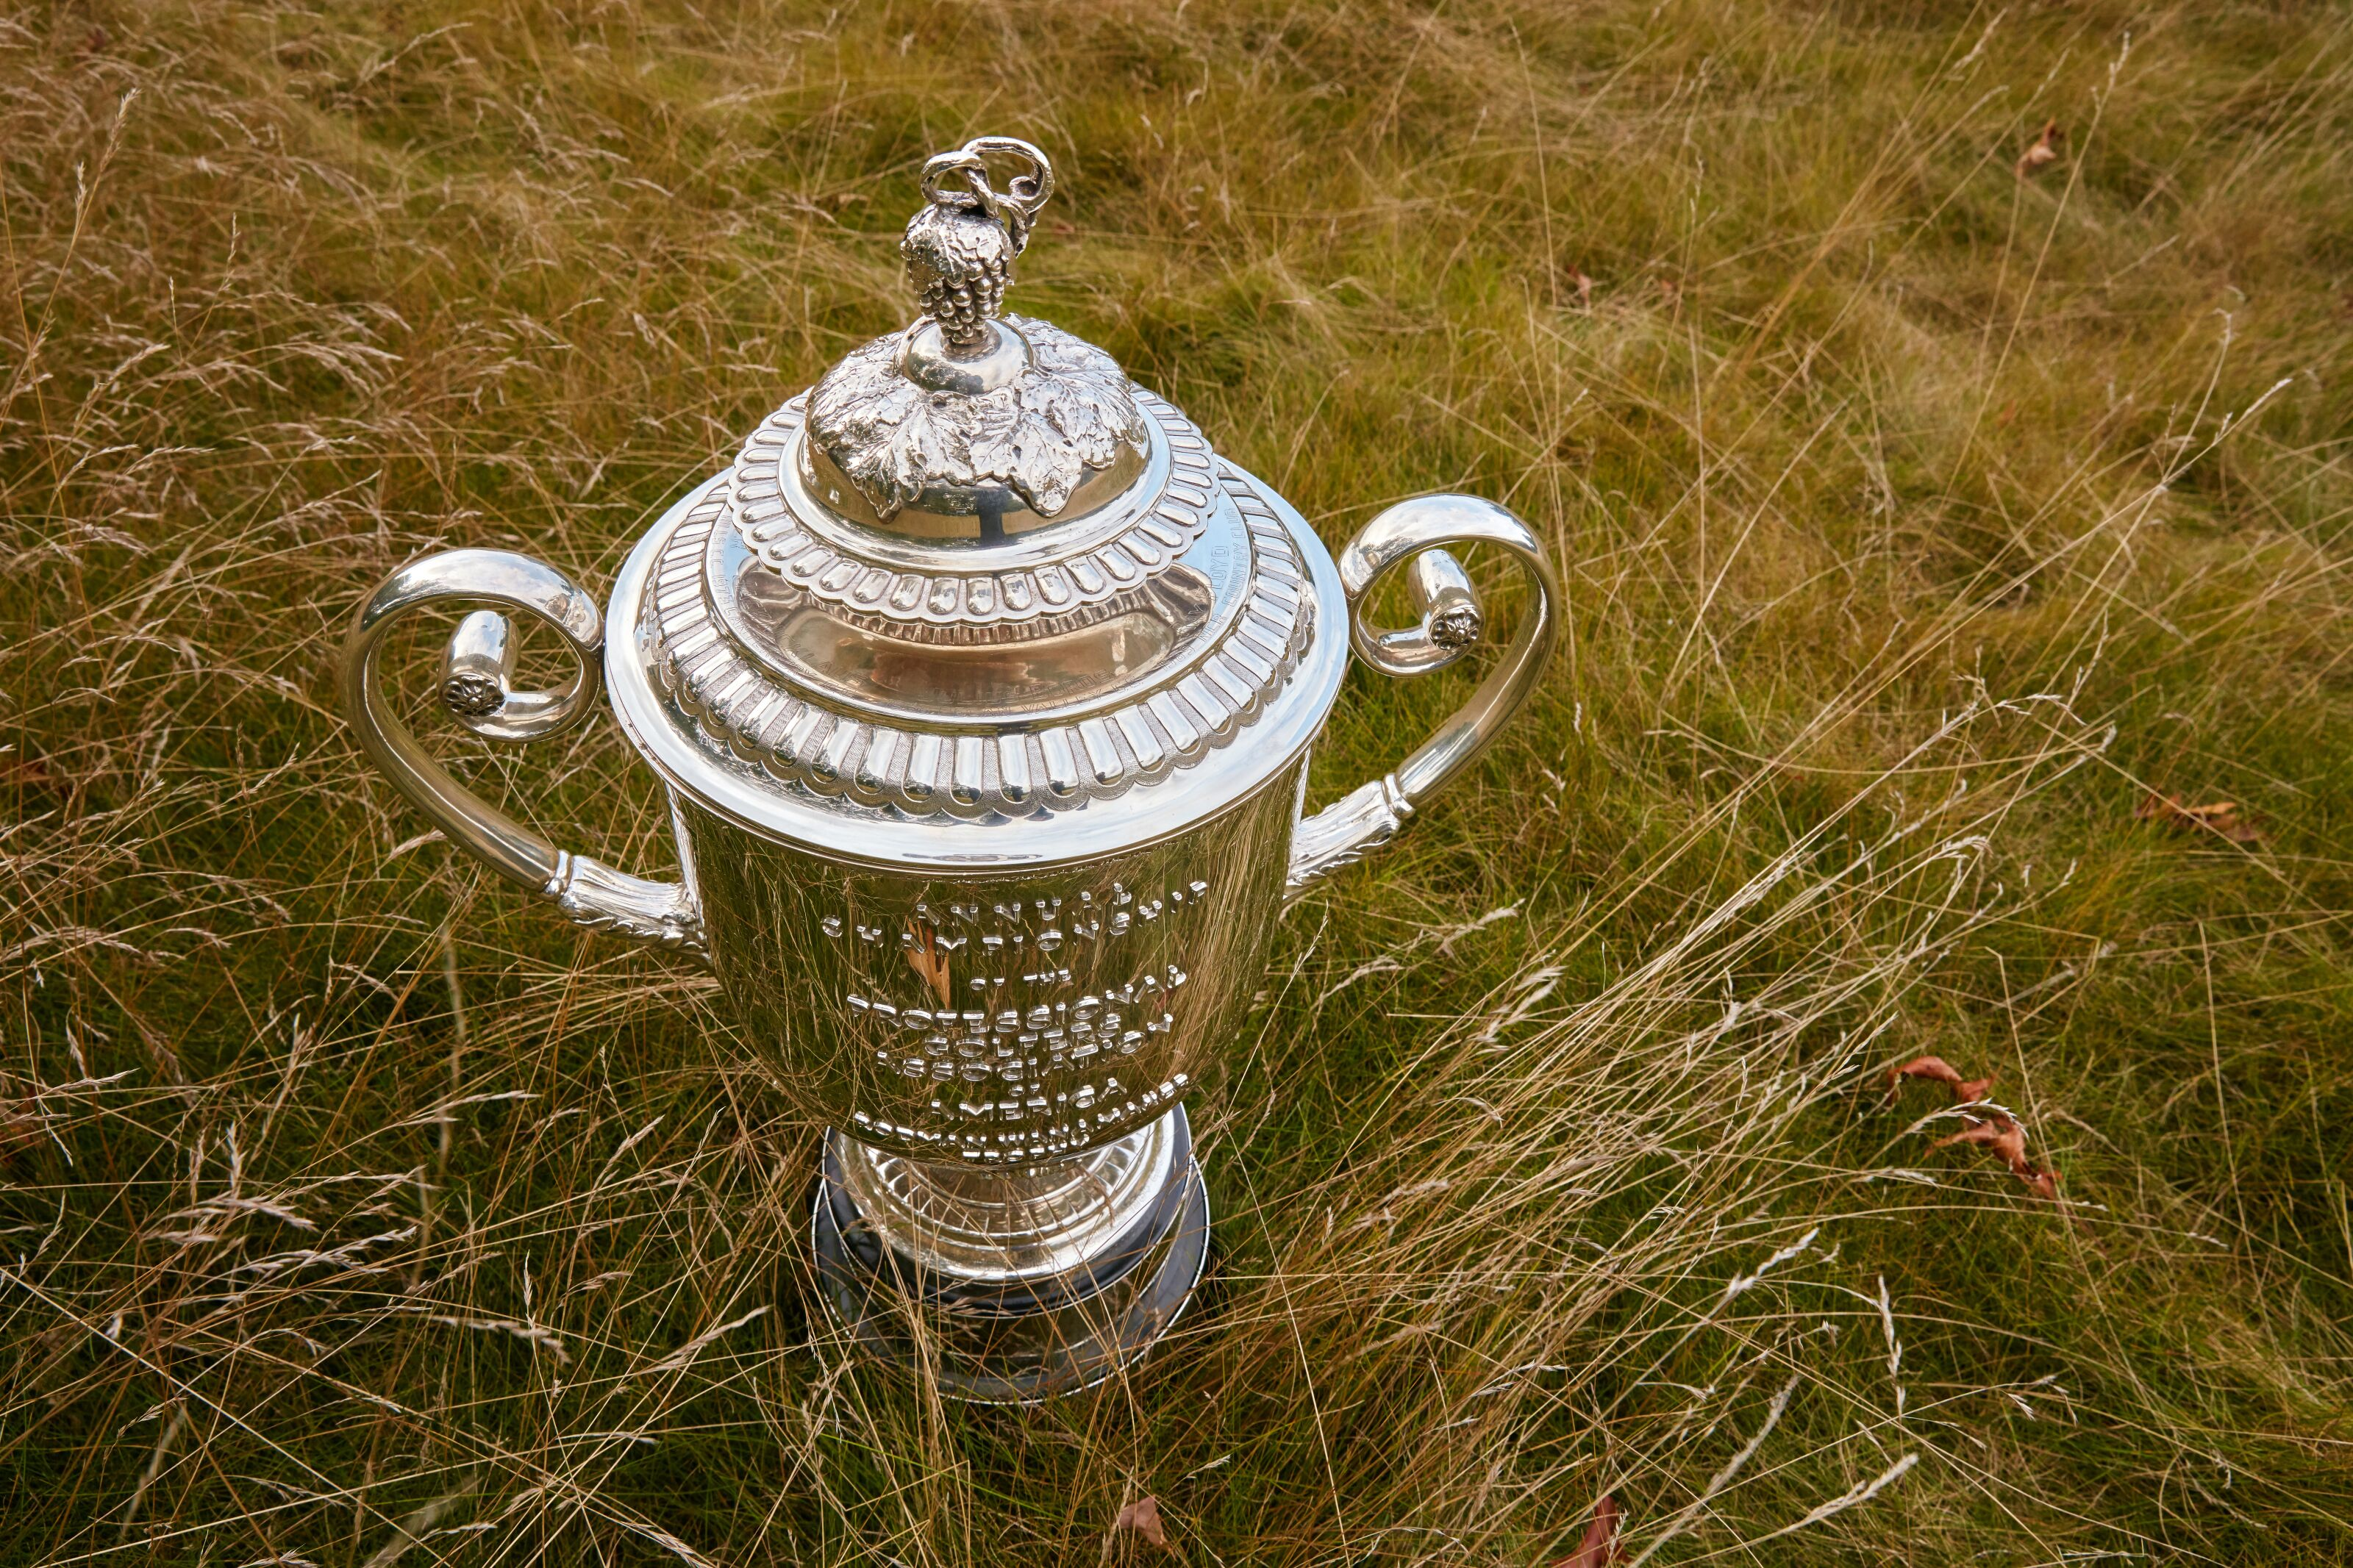 SPRINGFIELD TOWNSHIP, NJ - SEPTEMBER 20: EDITORS NOTE: This image has been retouched.) The Wannamaker Trophy sits at the Baltusrol Golf Club the host of the 2016 PGA Championship on September 20, 2015 in Springfield Township, New Jersey. (Photo by Gary Kellner/PGA of America via Getty Images)